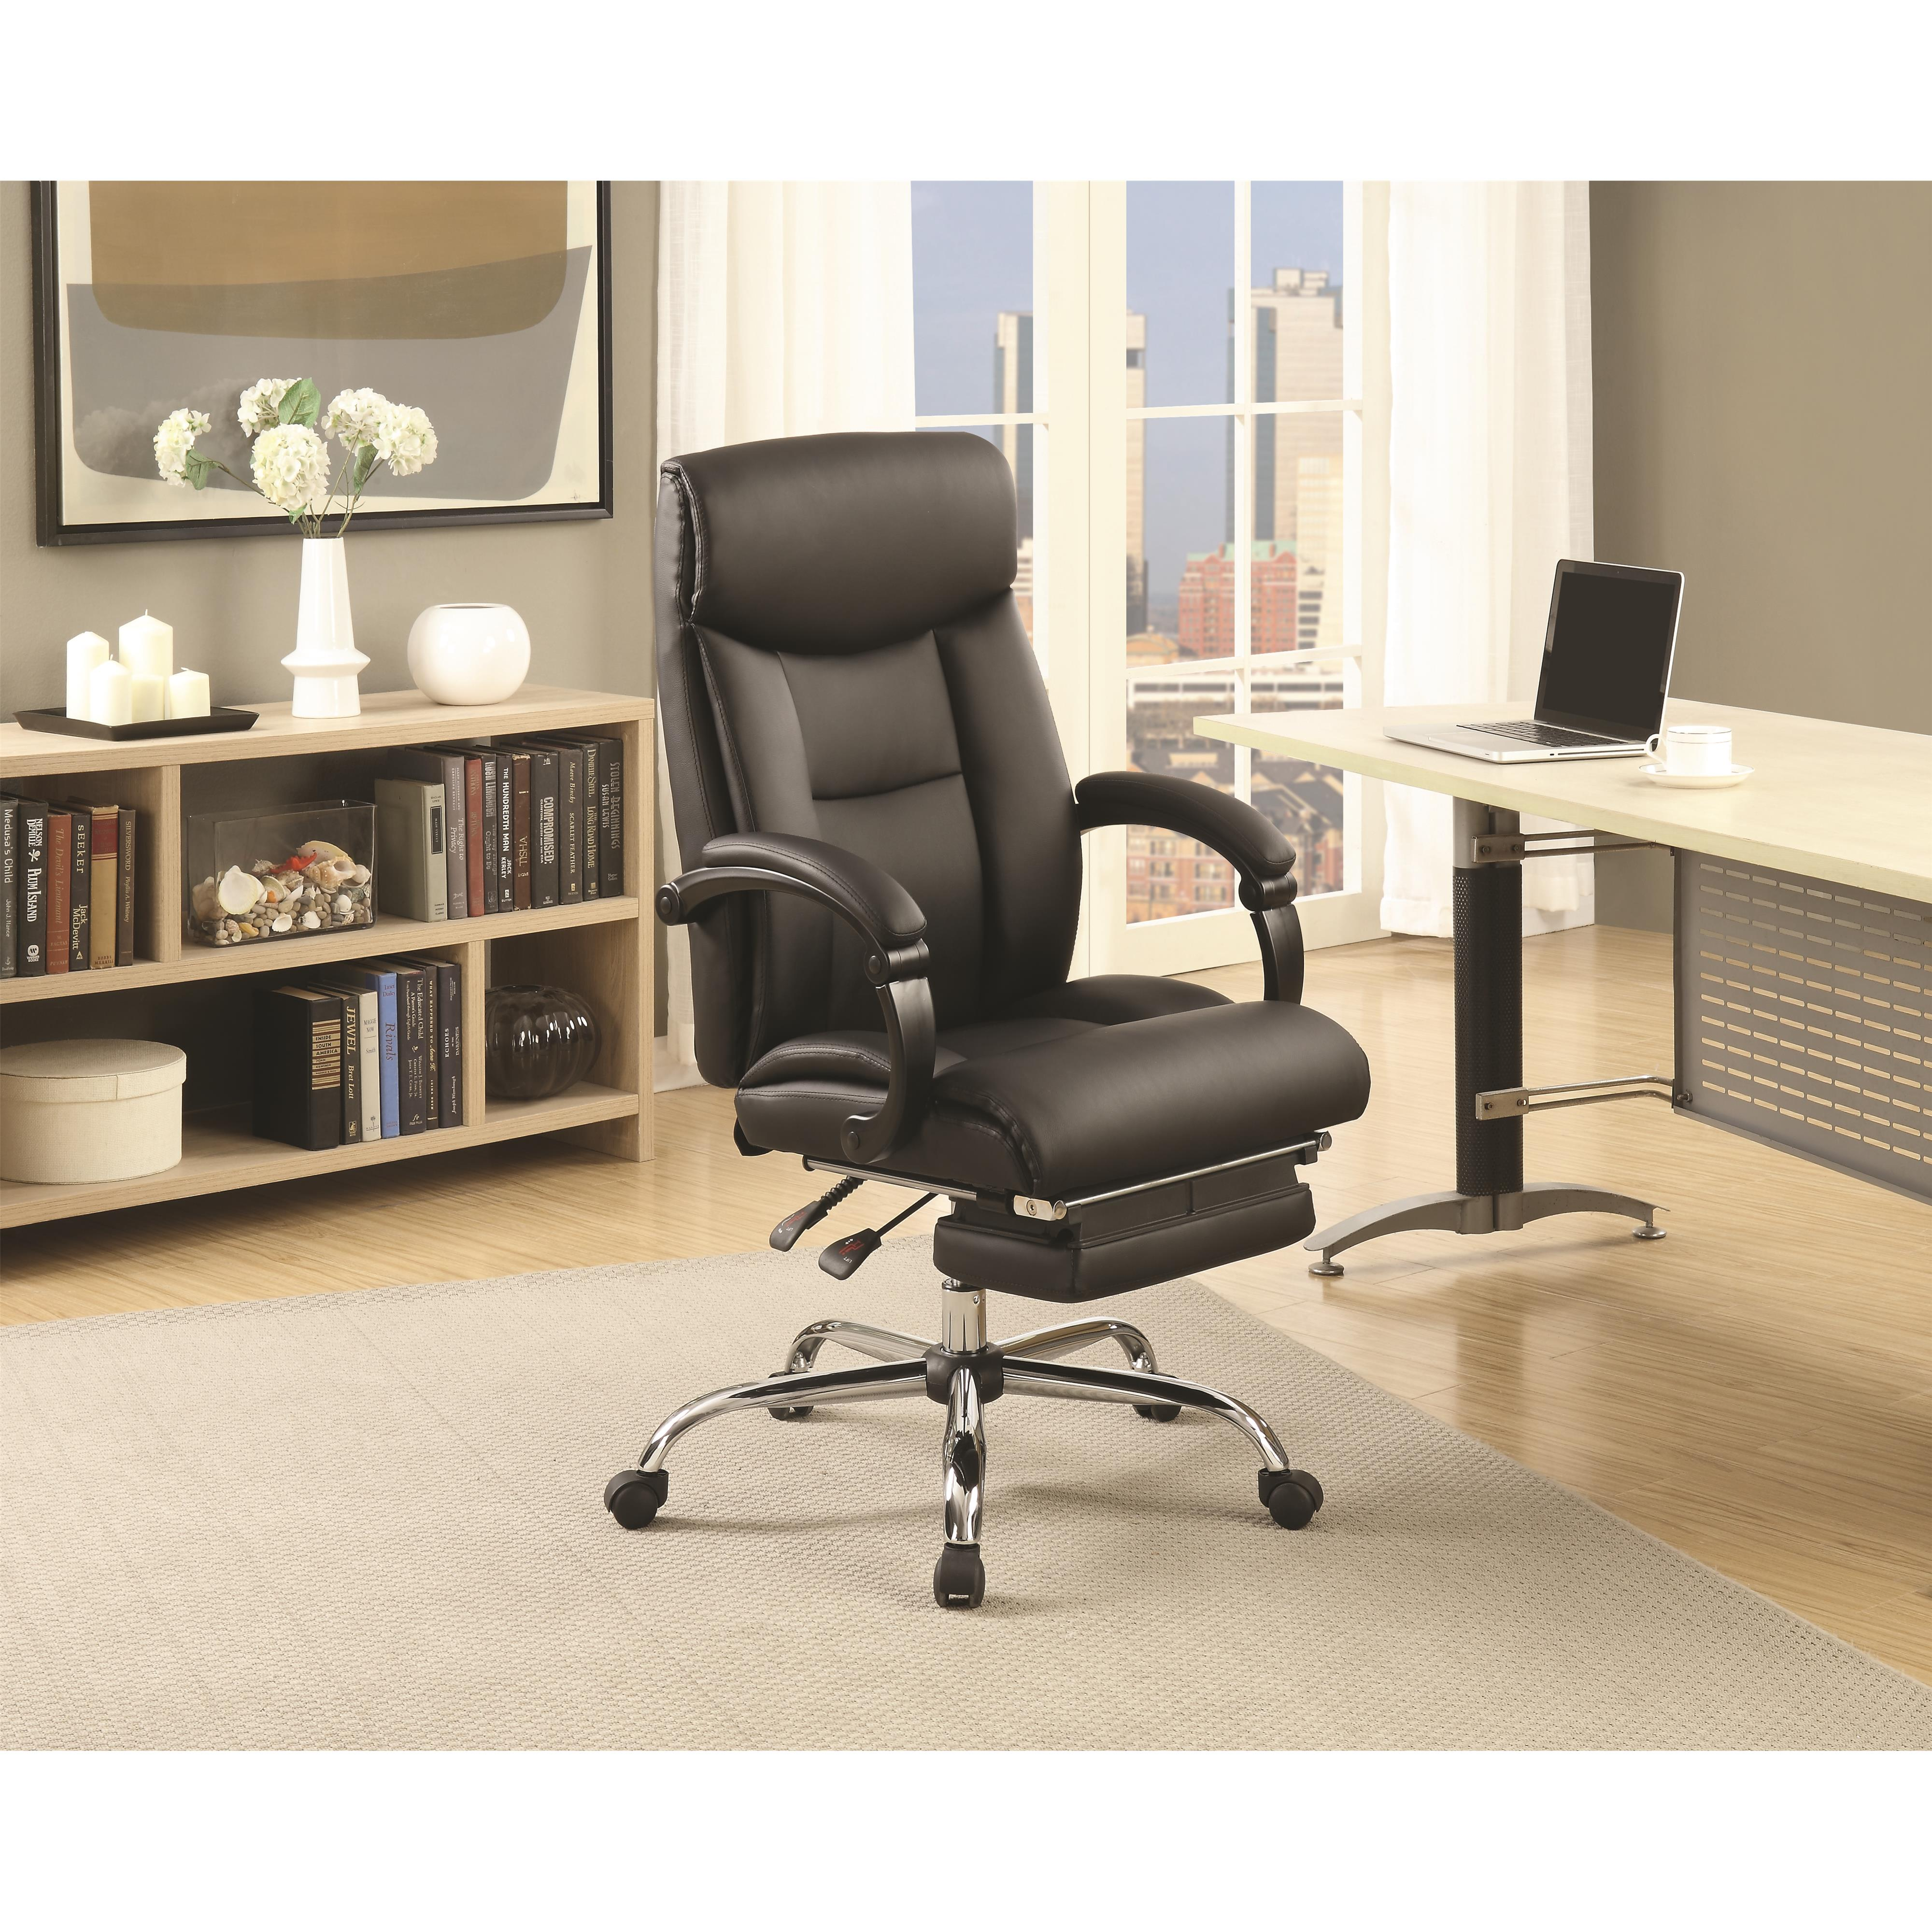 Coaster Office Chairs 801318 Black Adjustable Office Chair